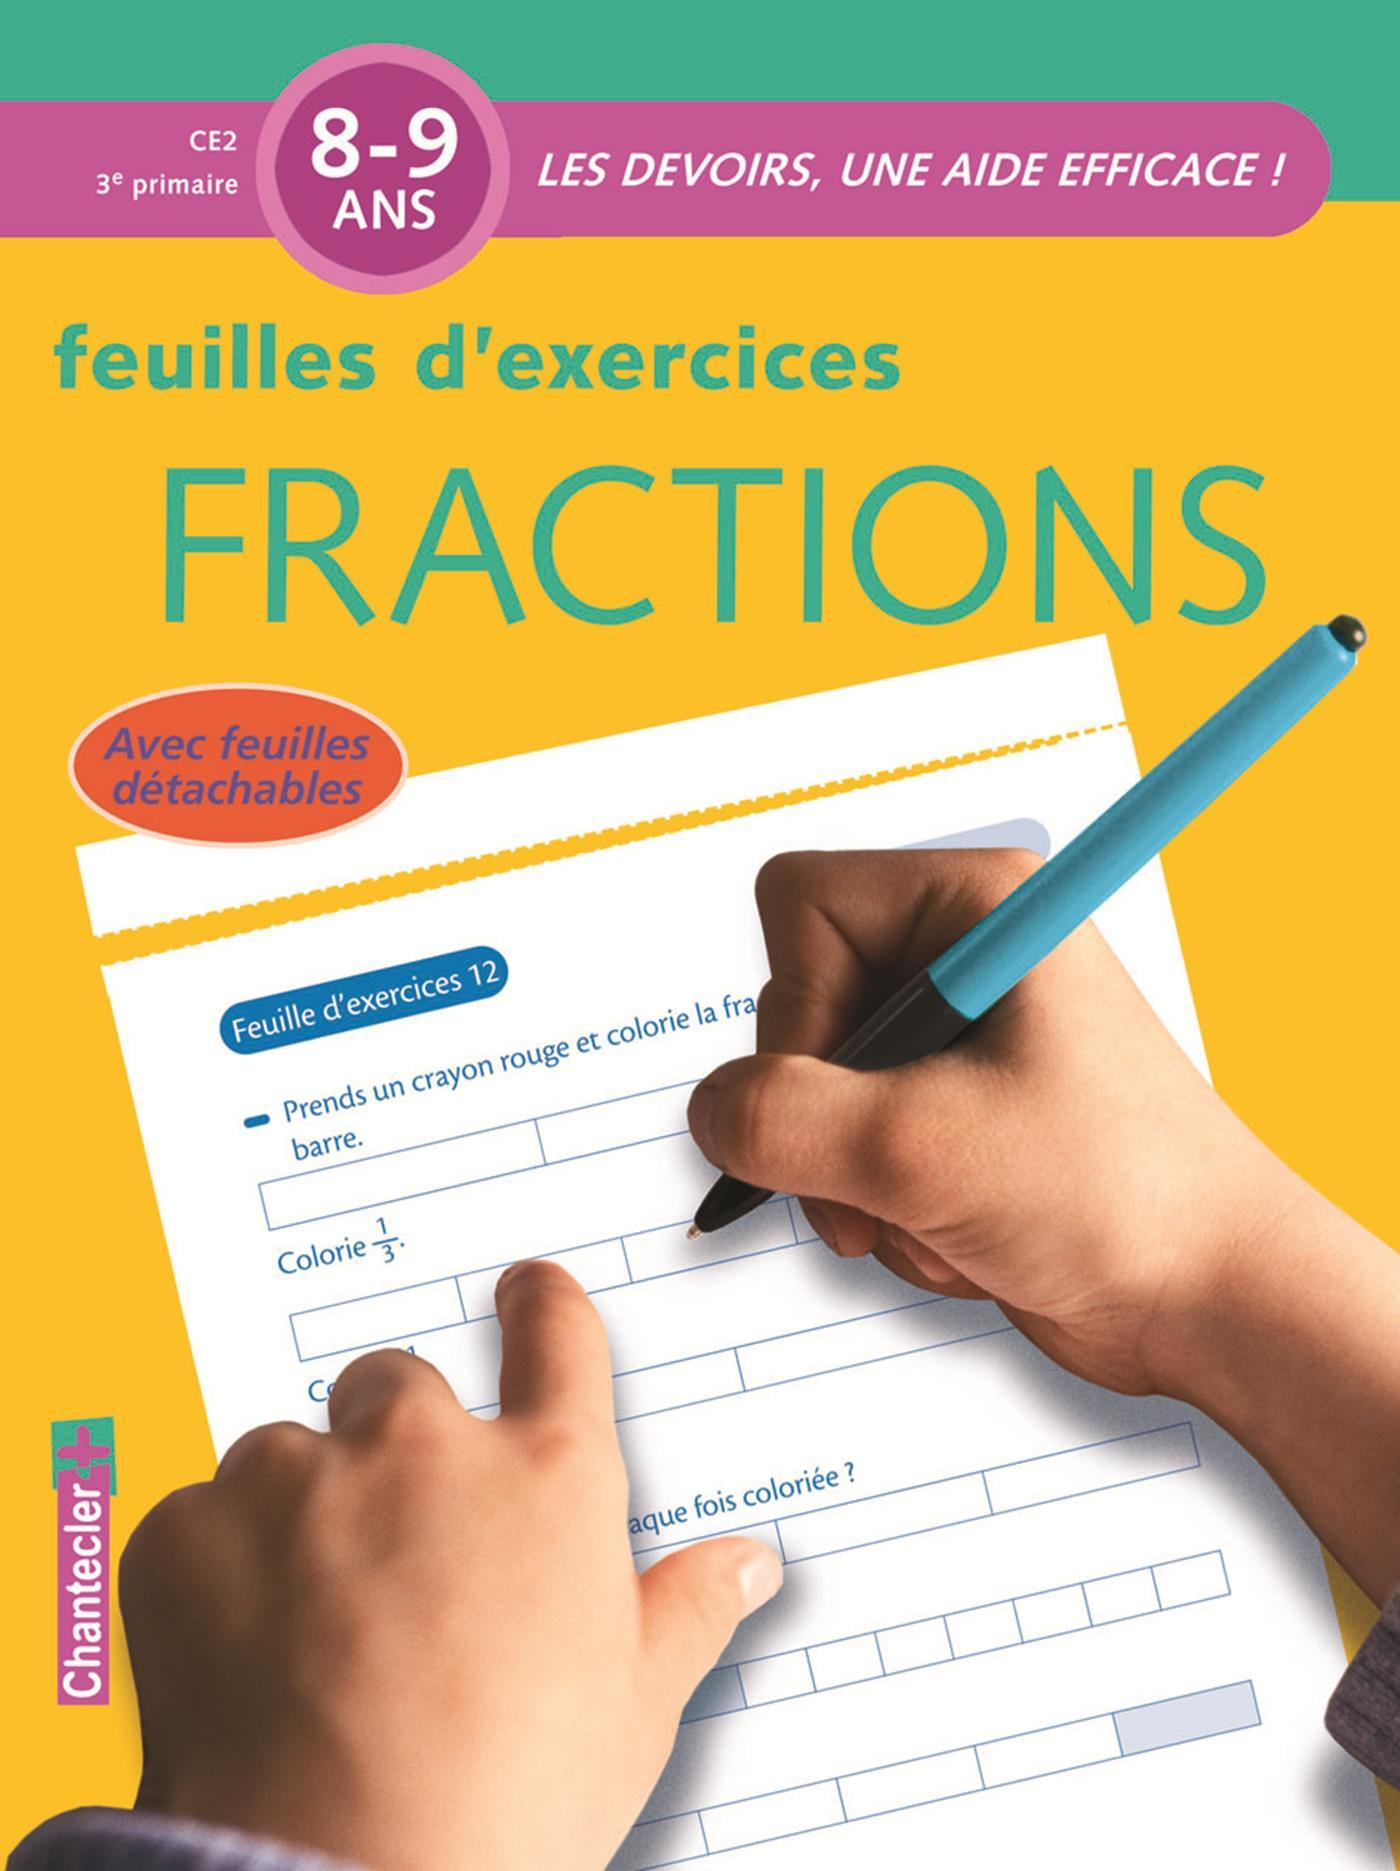 FRACTIONS 8-9 ANS CE2 - FEUILLES D'EXERCICES